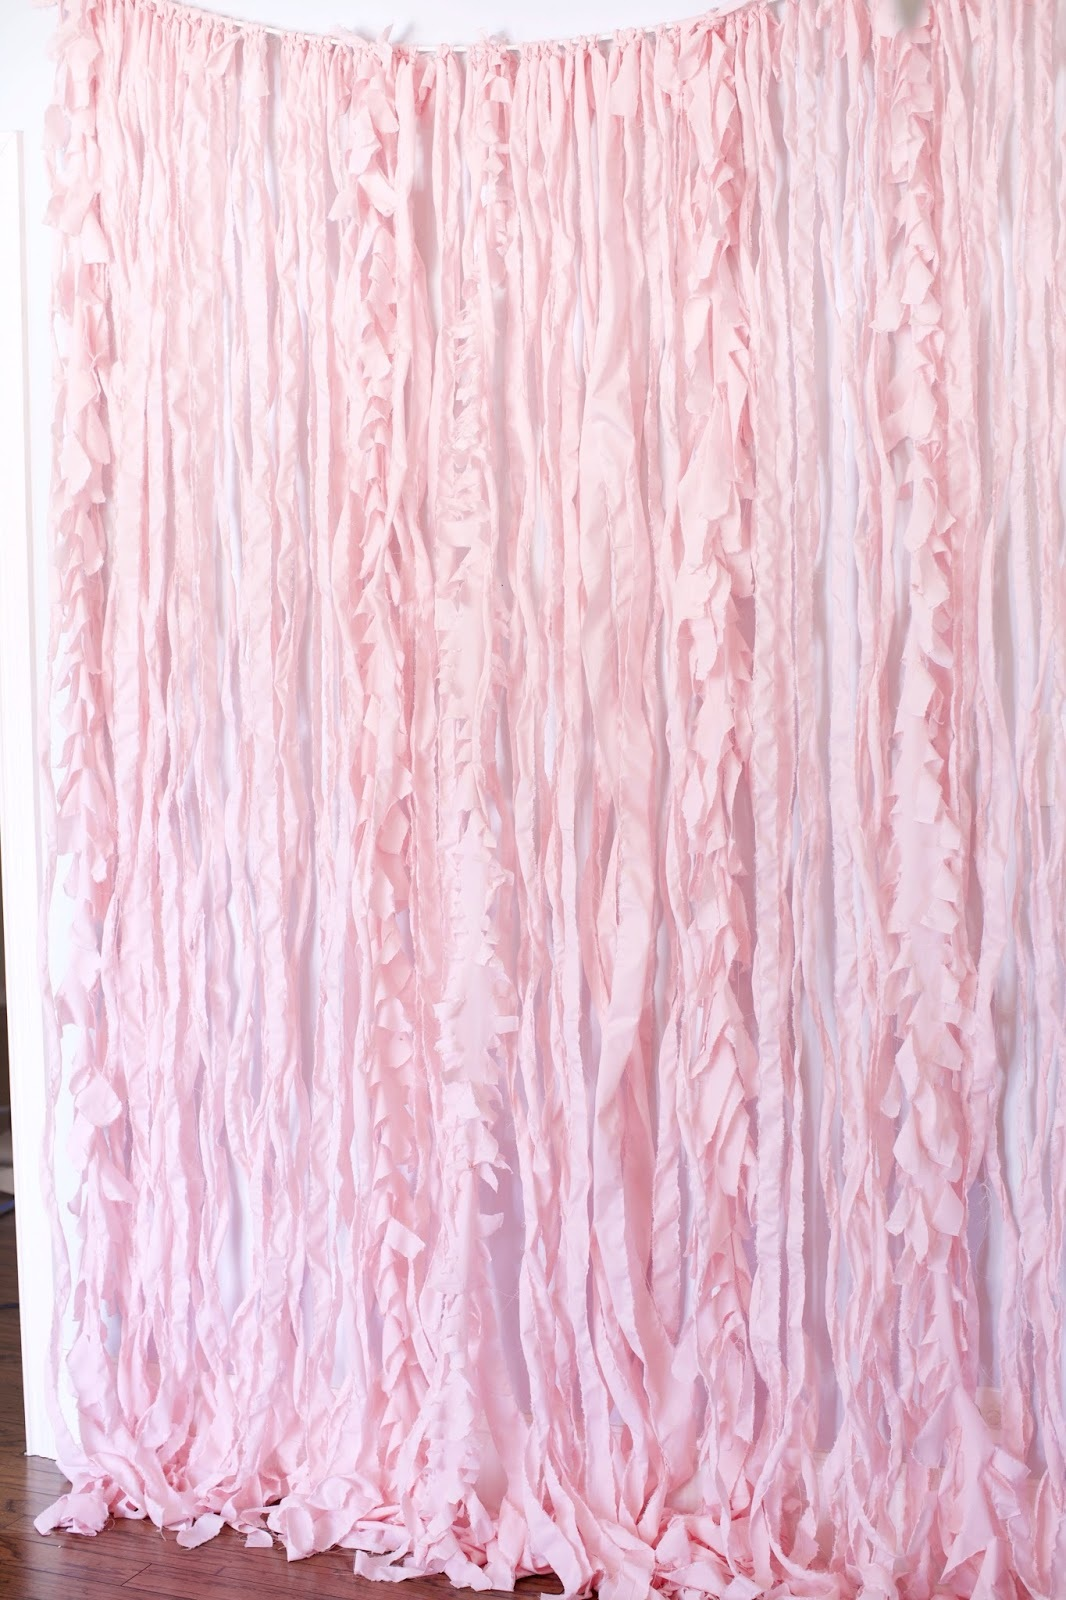 diy fabric photo backdrop